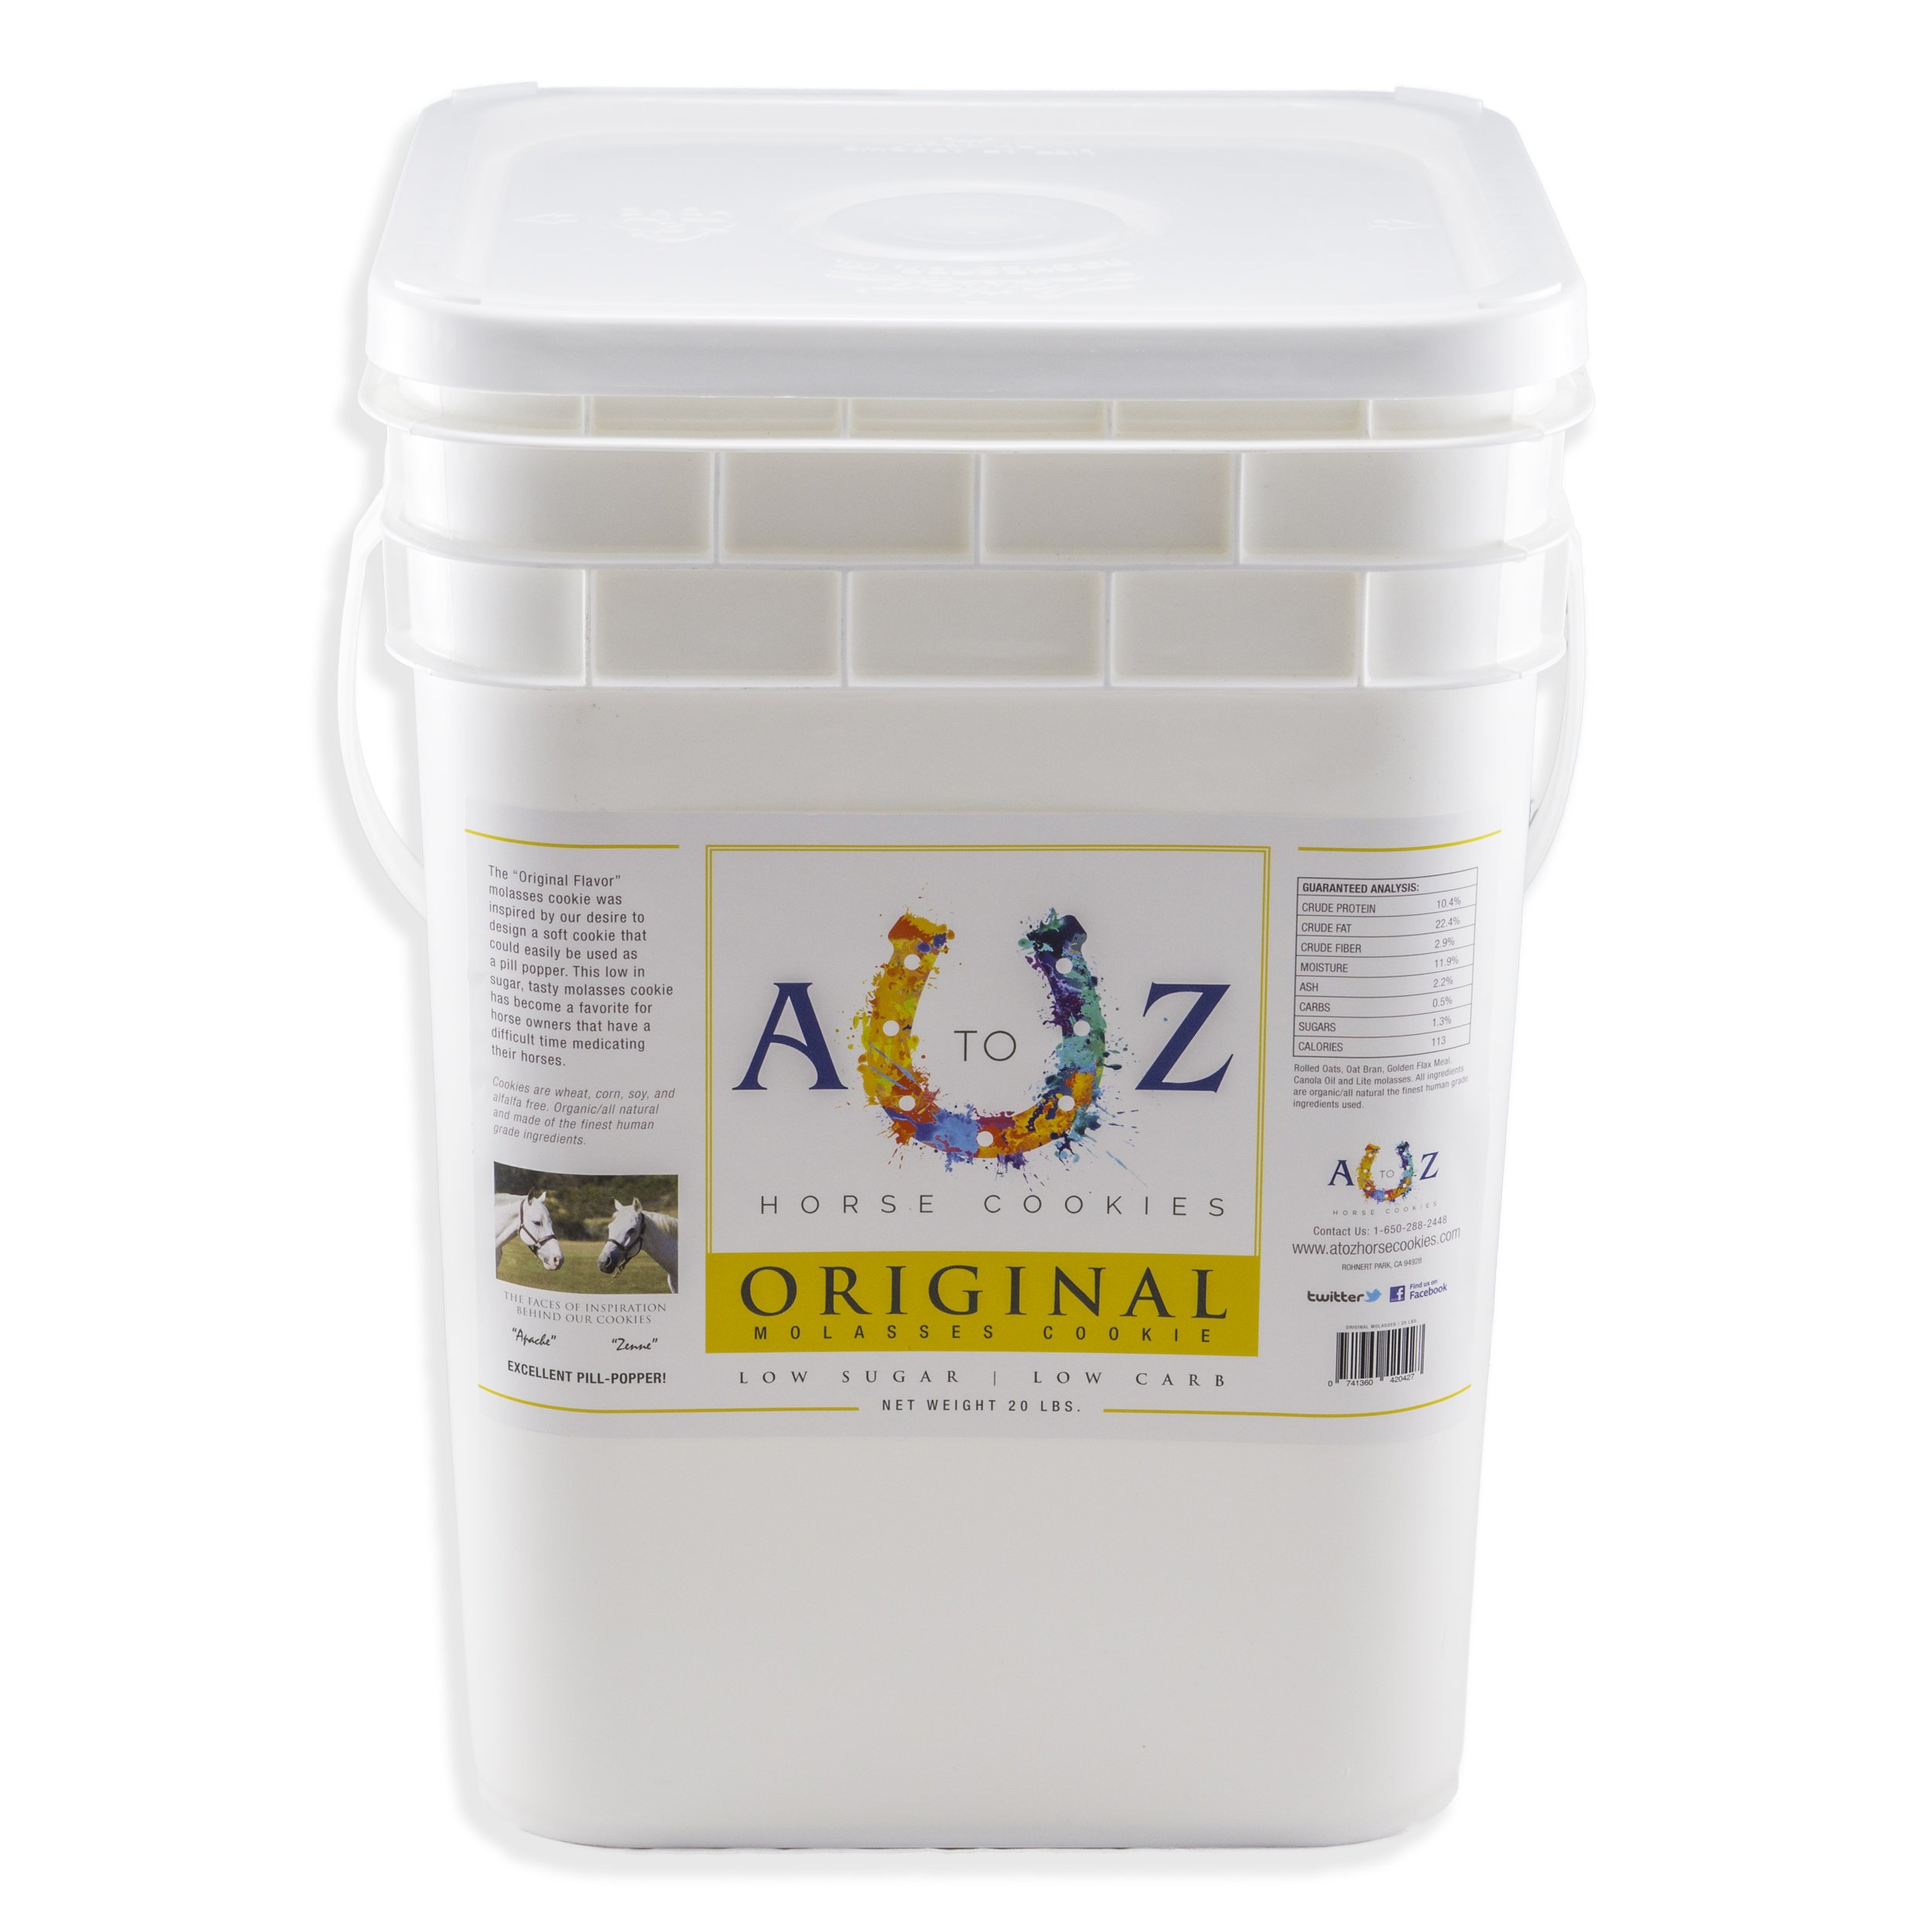 Horse Cookie Treat: Original Flavor by A - Z Horse Cookies, Low Carb Low Sugar Softer Treats, Organic, Great For All Horses And Excellent For Those With Metabolic Conditions, 20 lbs Pail